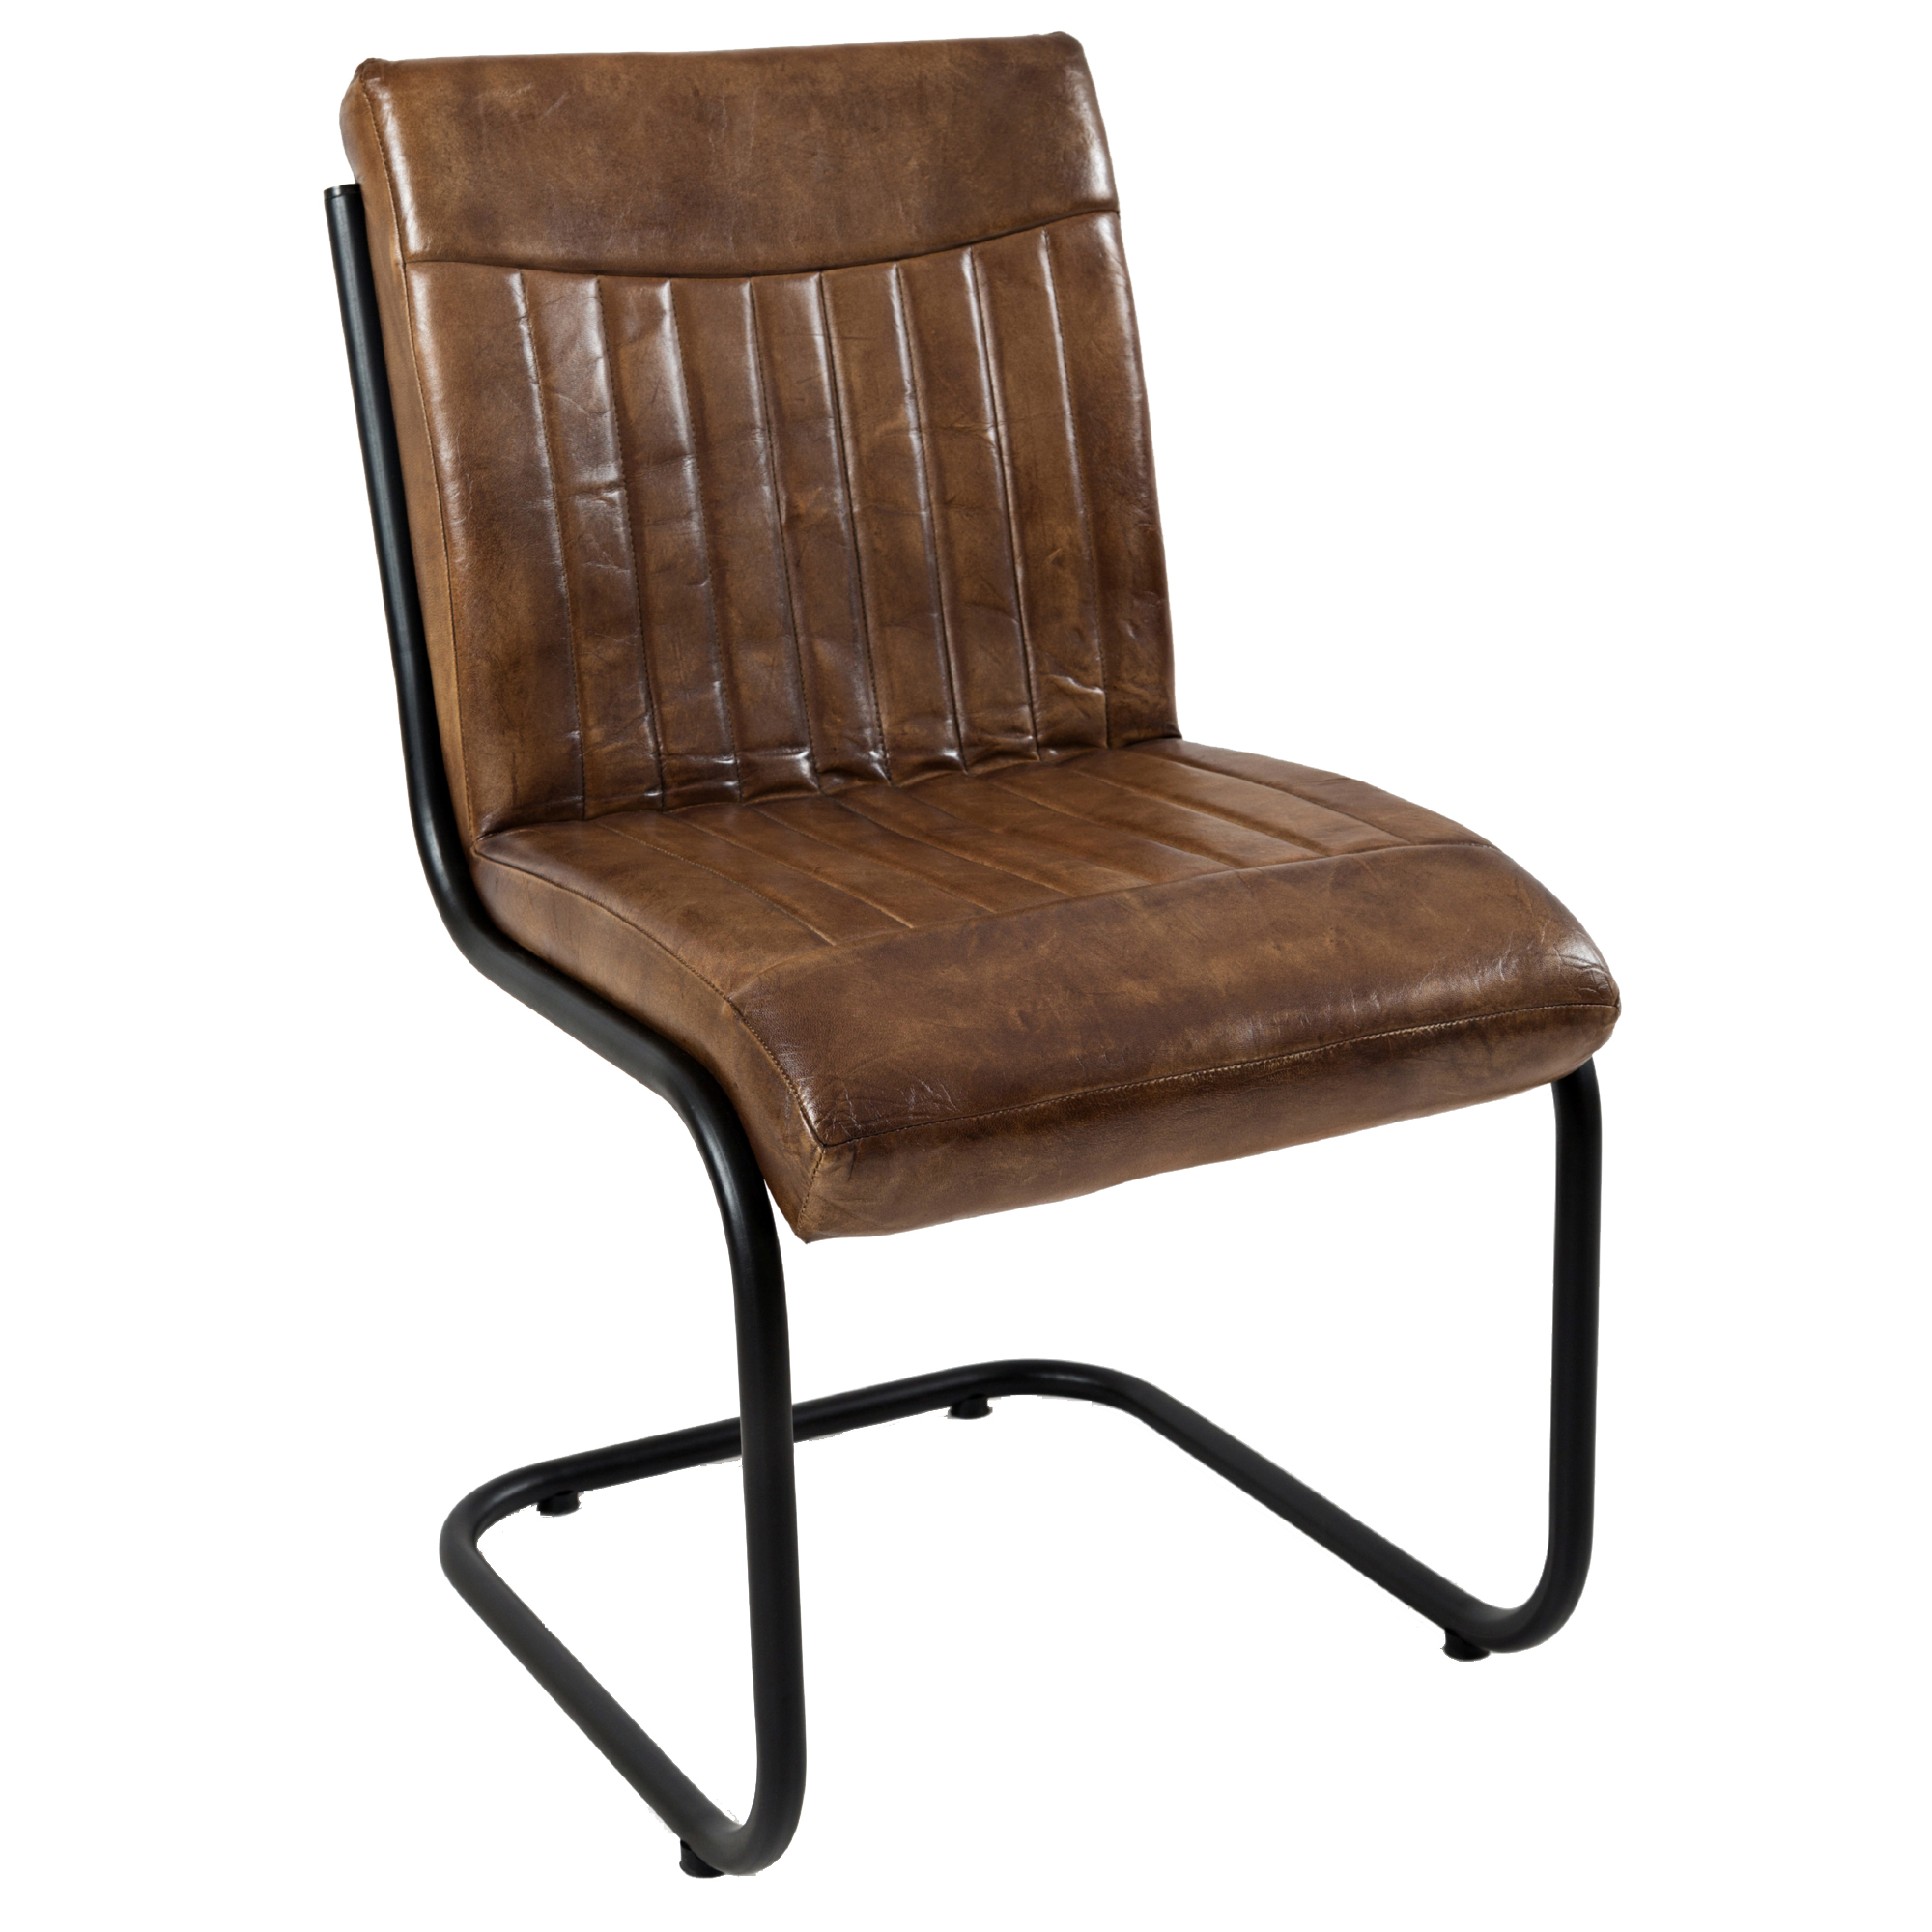 Metal And Leather Chair Leather And Metal Dining Chair Zef Jam